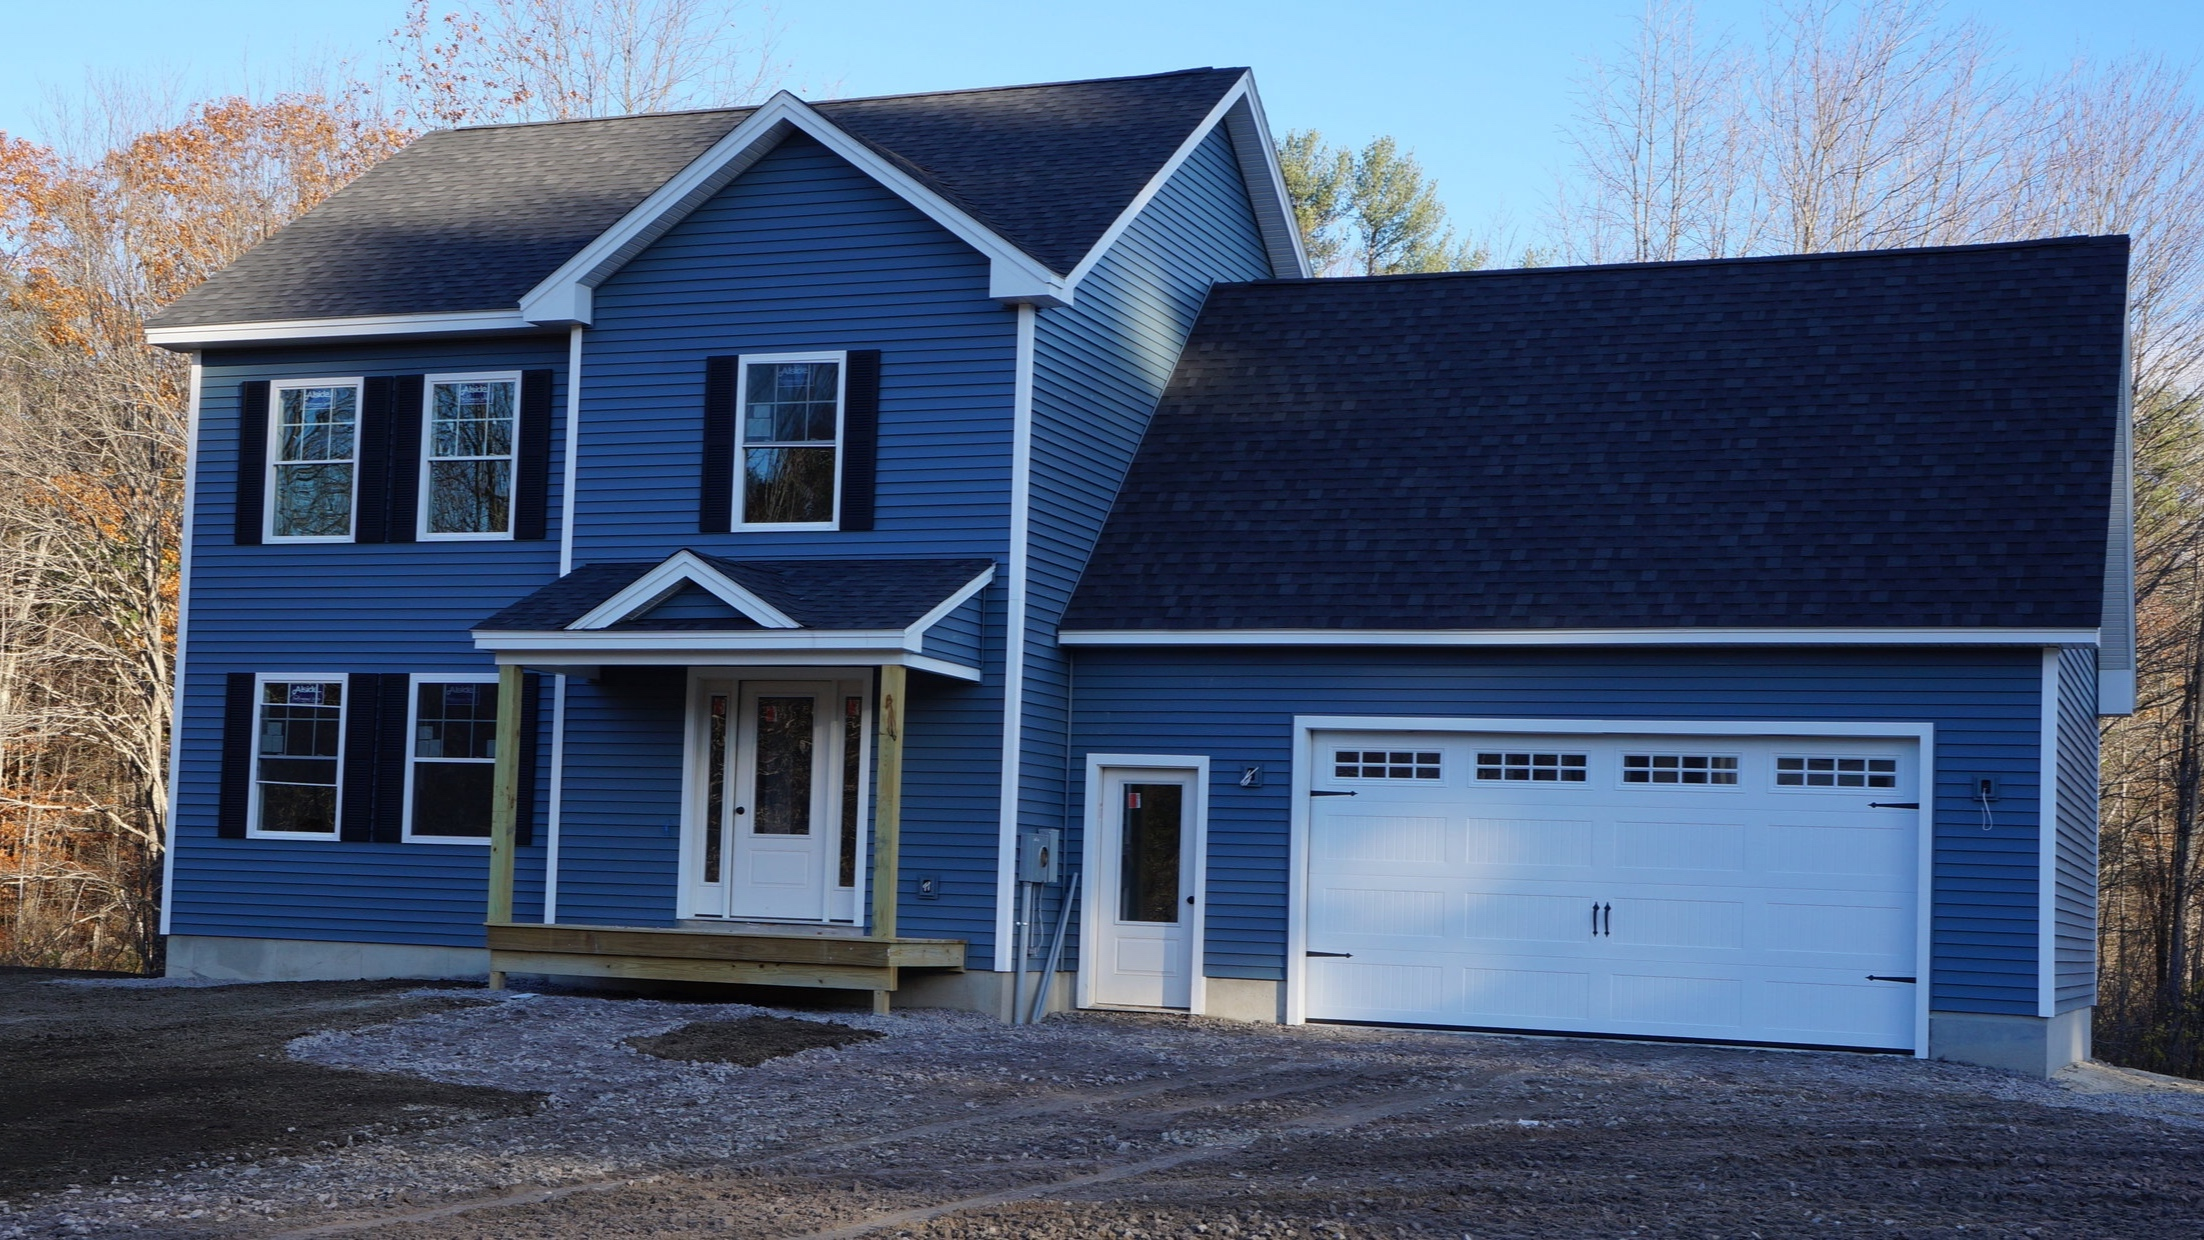 11 Charlan Ln Windham, Maine